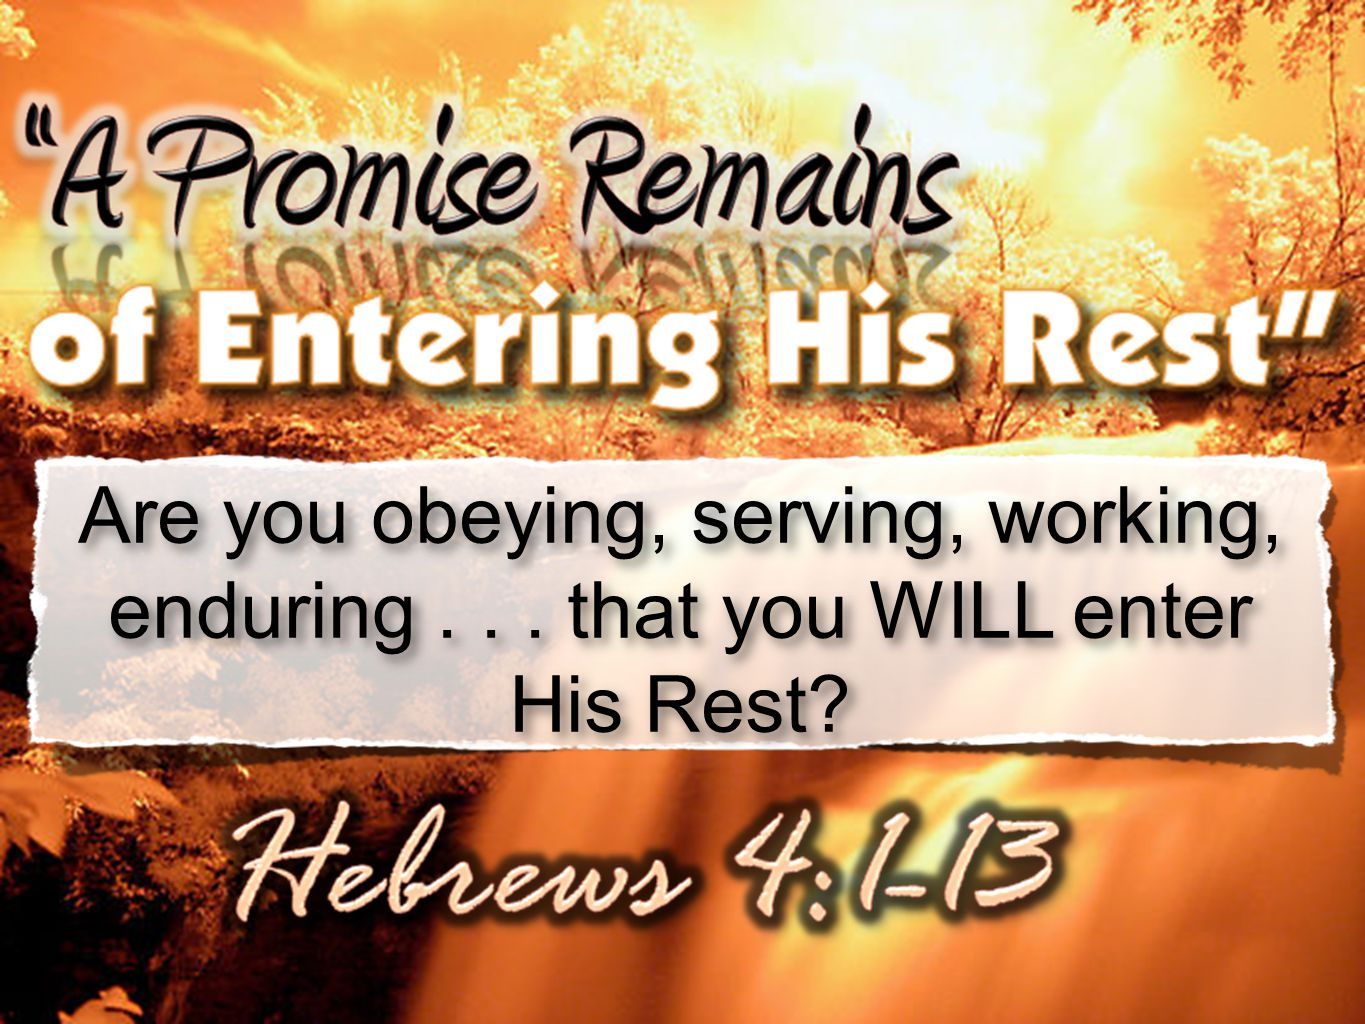 Are you obeying, serving, working, enduring